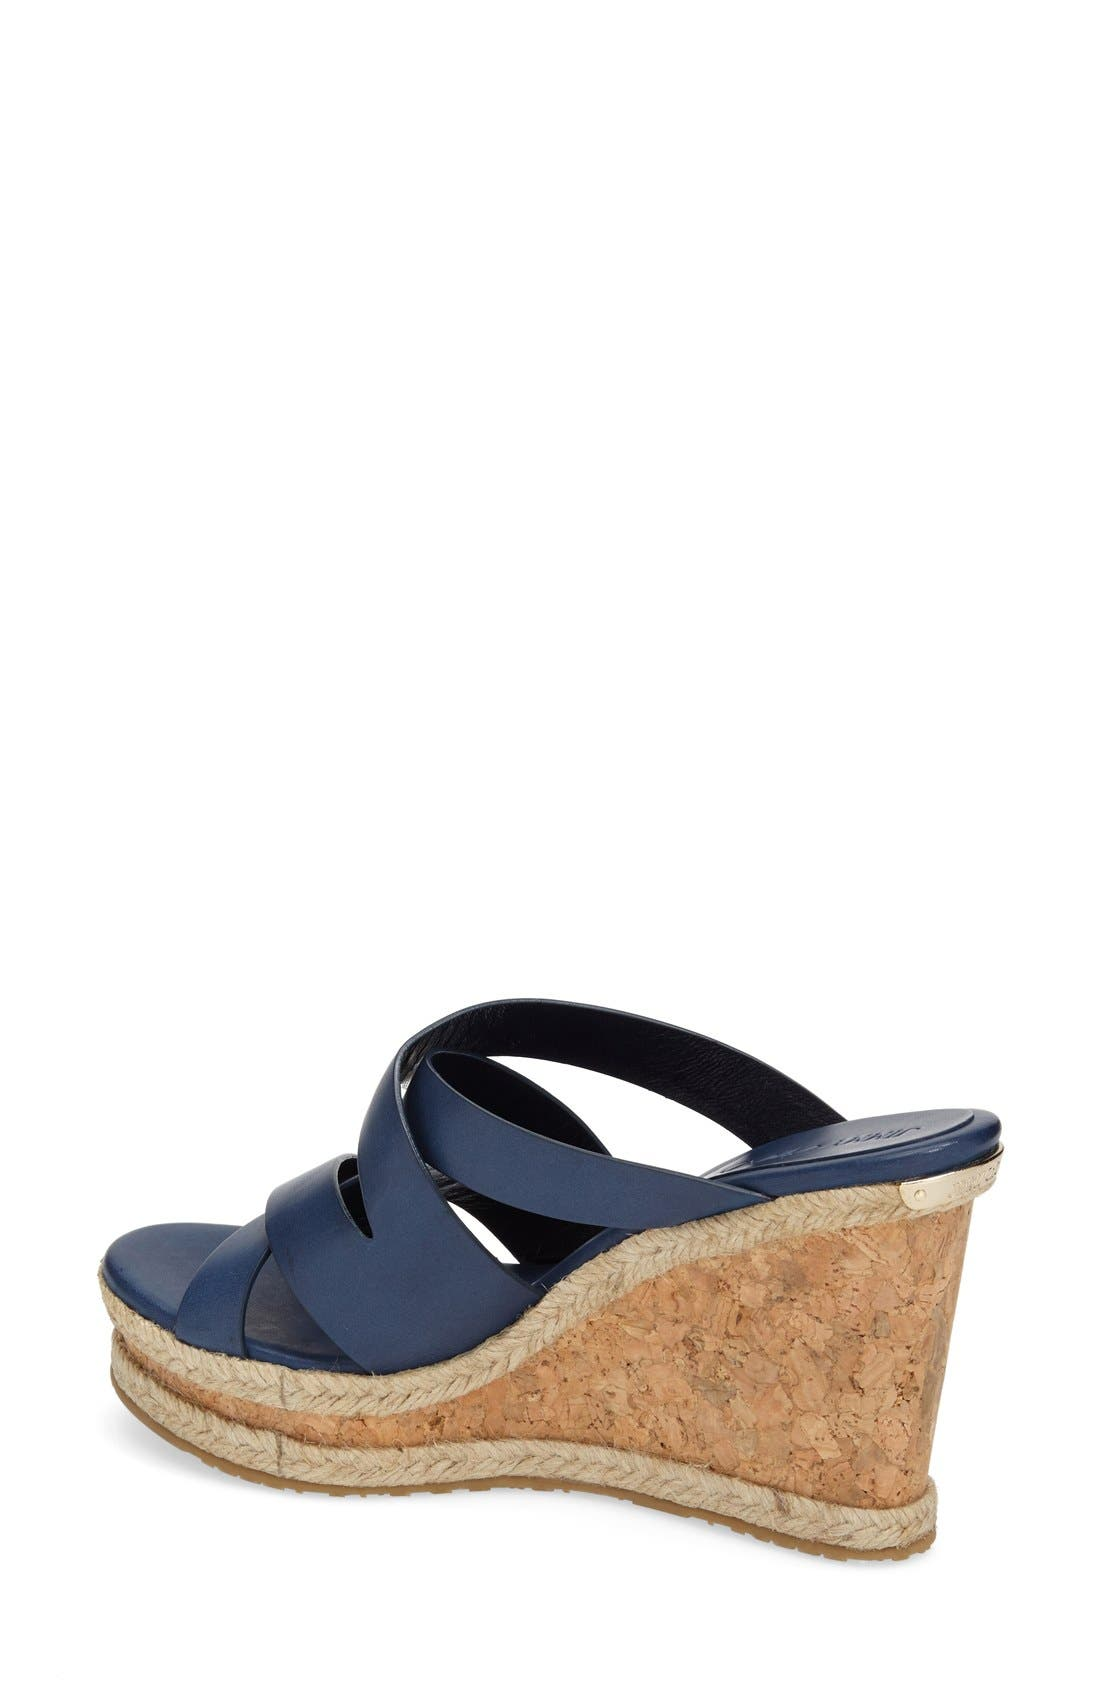 'Prisma' Leather Wedge Sandal,                             Alternate thumbnail 2, color,                             Navy